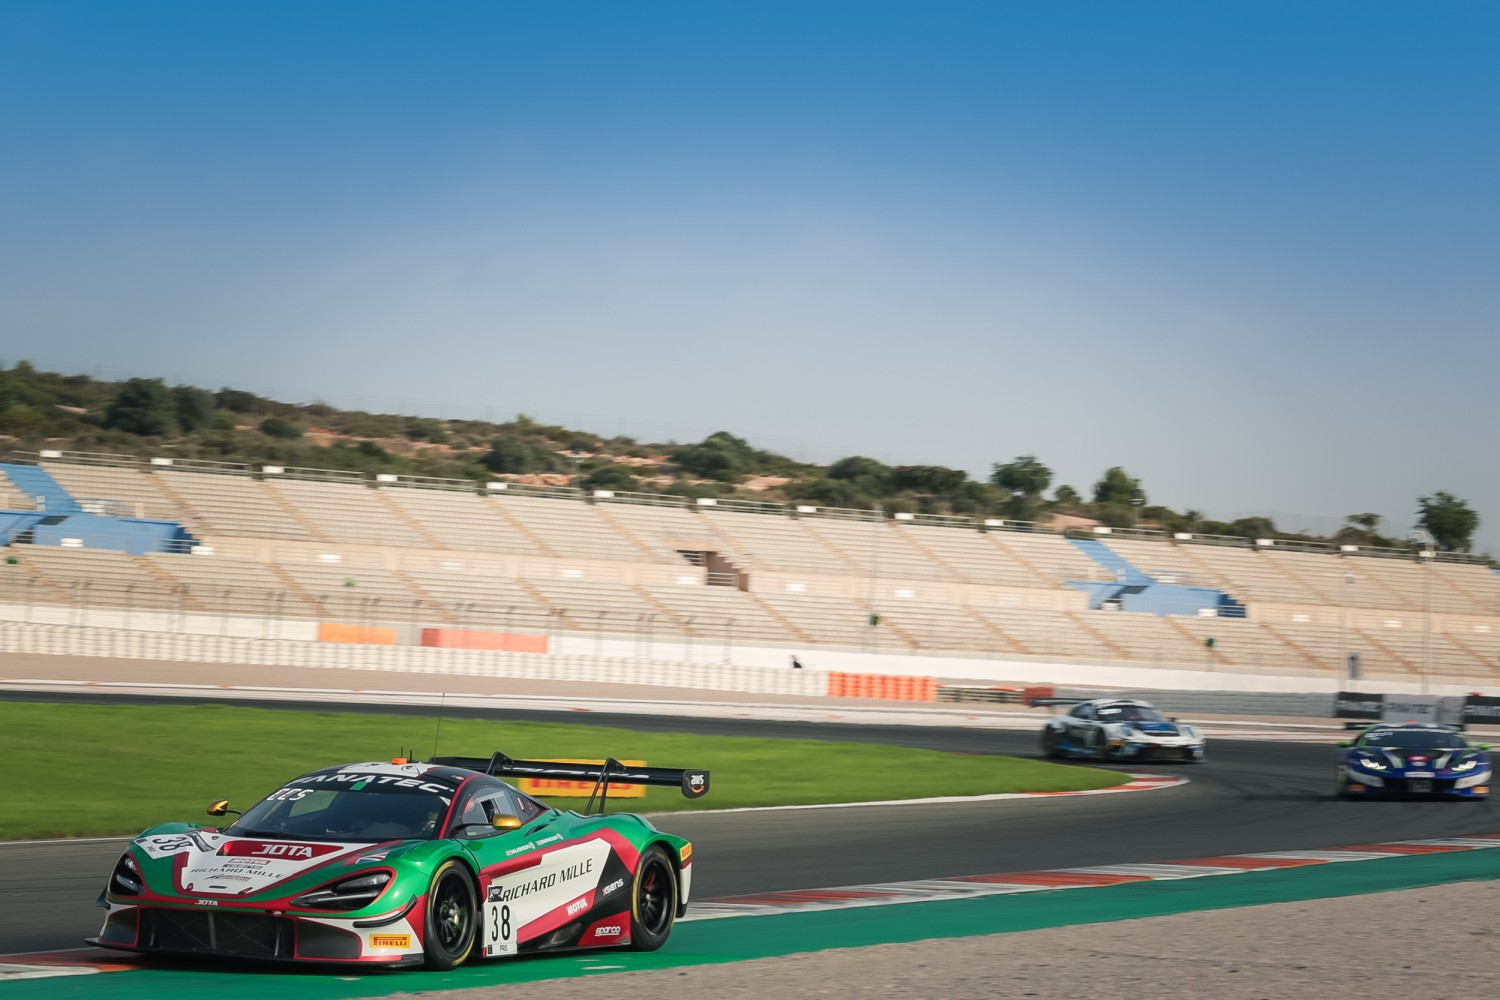 JOTA McLaren hits the front as Barnicoat paces pre-qualifying at Valencia